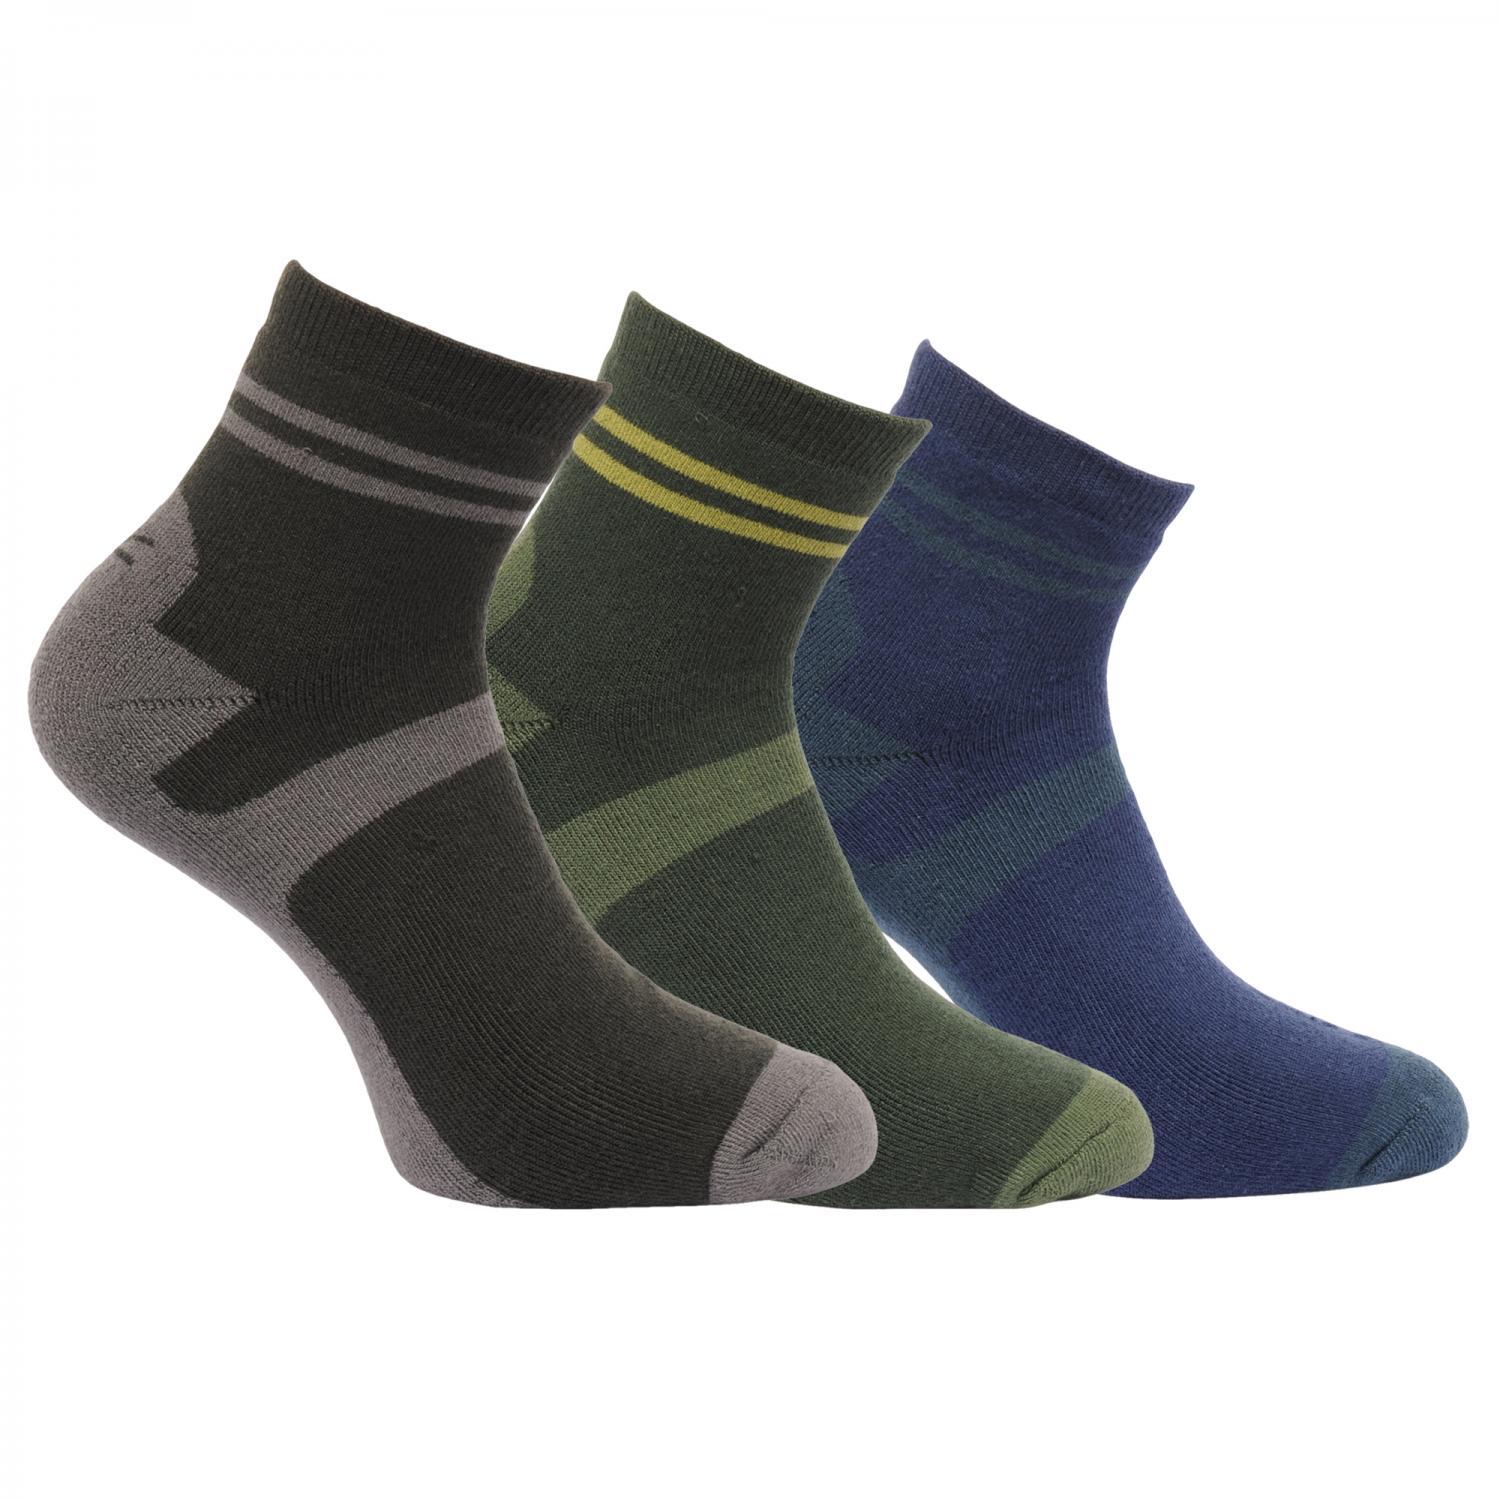 Clothing Accessories Mens 3 Pack Active Lifestyle Socks Ravn Bayleaf Navy